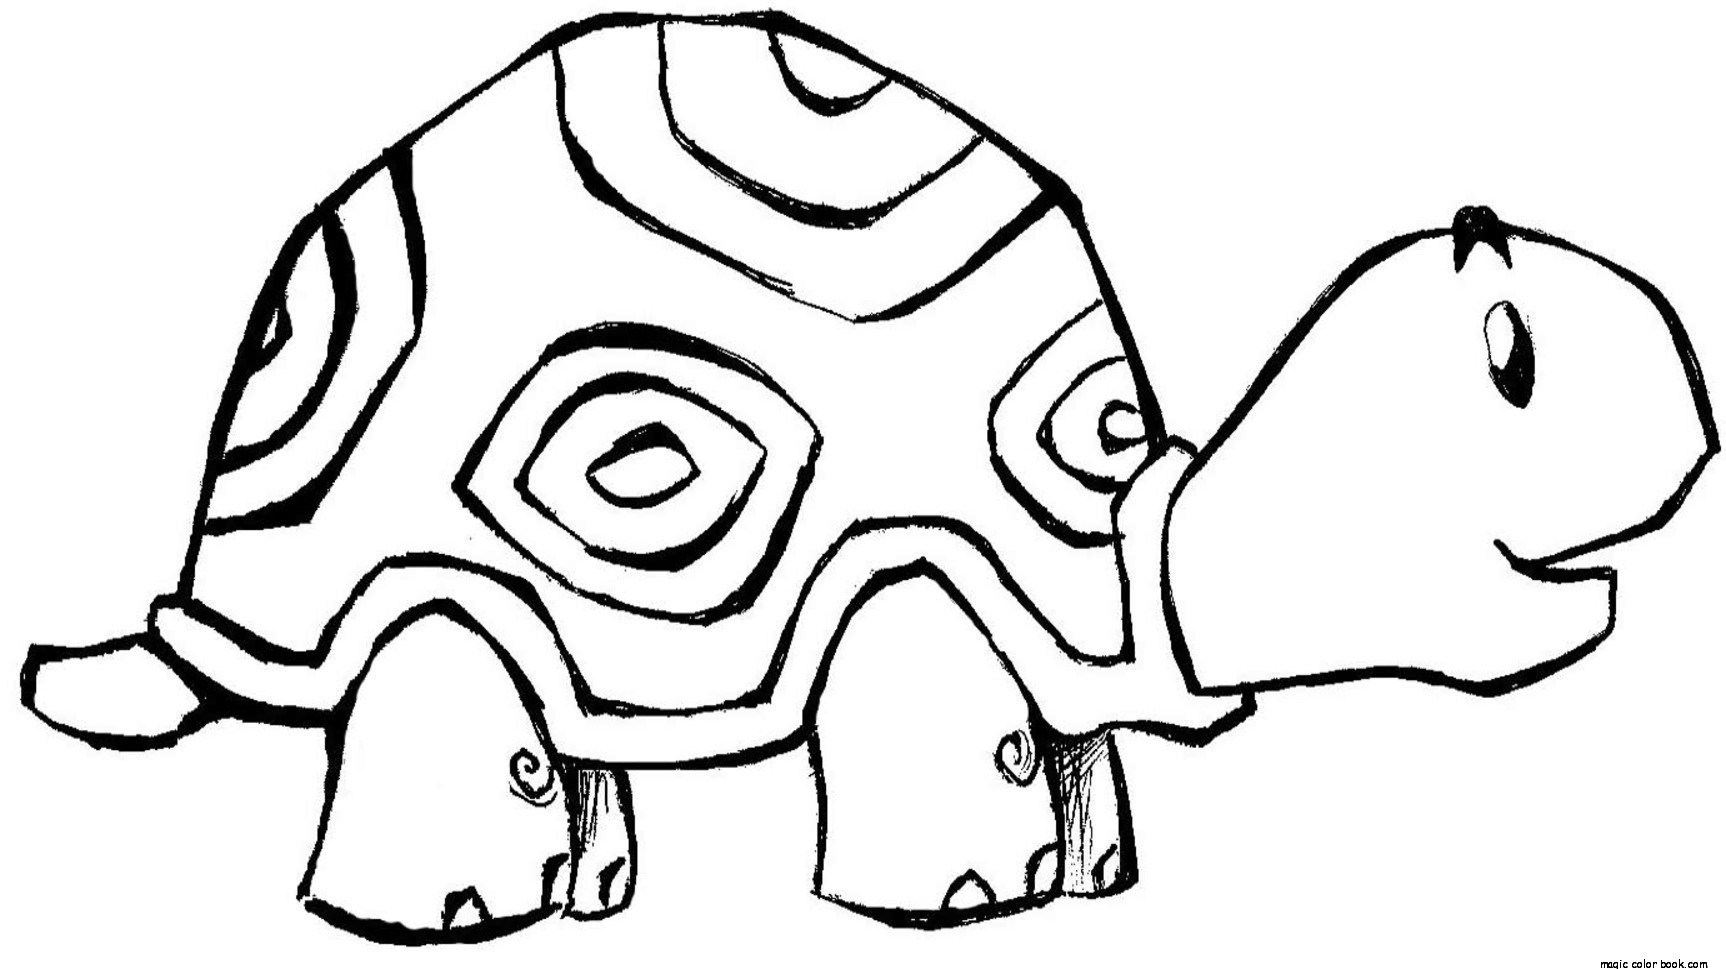 Sea Turtle Coloring Pages For Kids at GetDrawings.com | Free ...